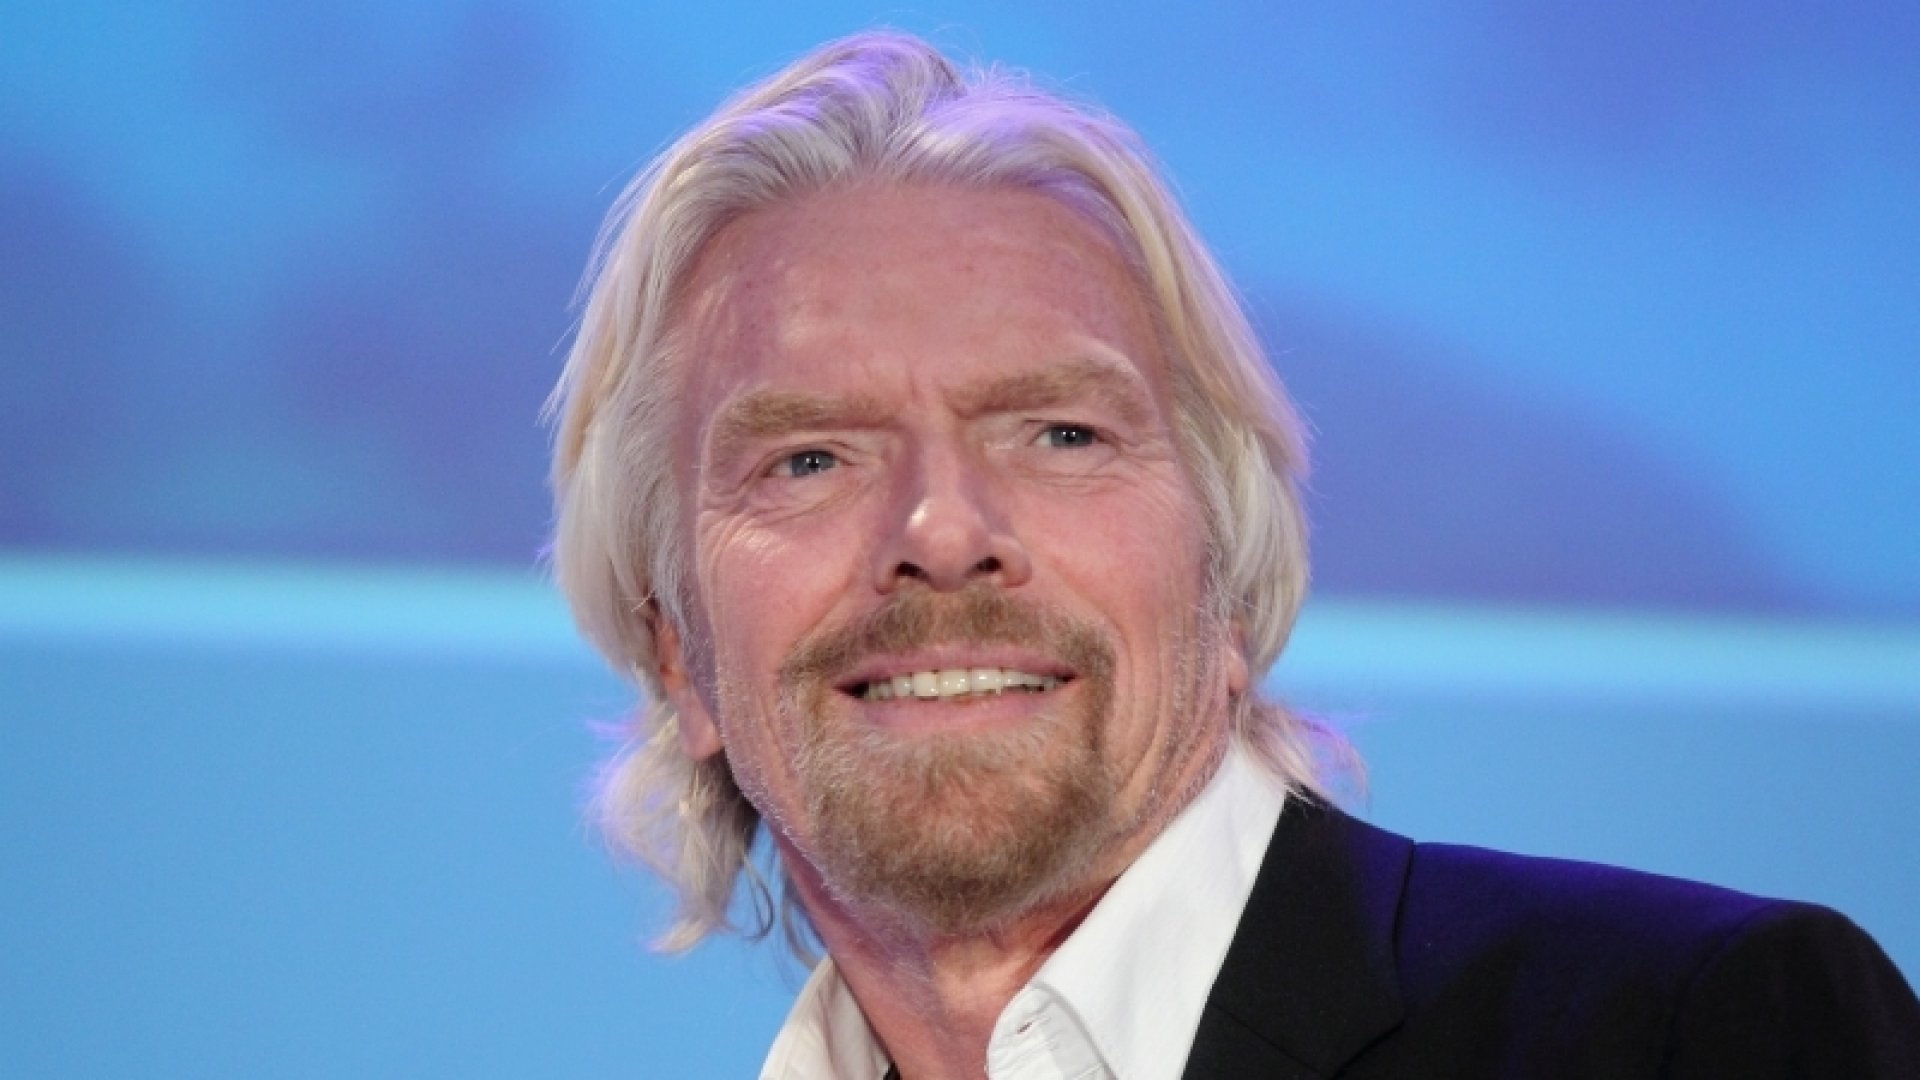 100 Great Leadership Speakers for Your Next Conference